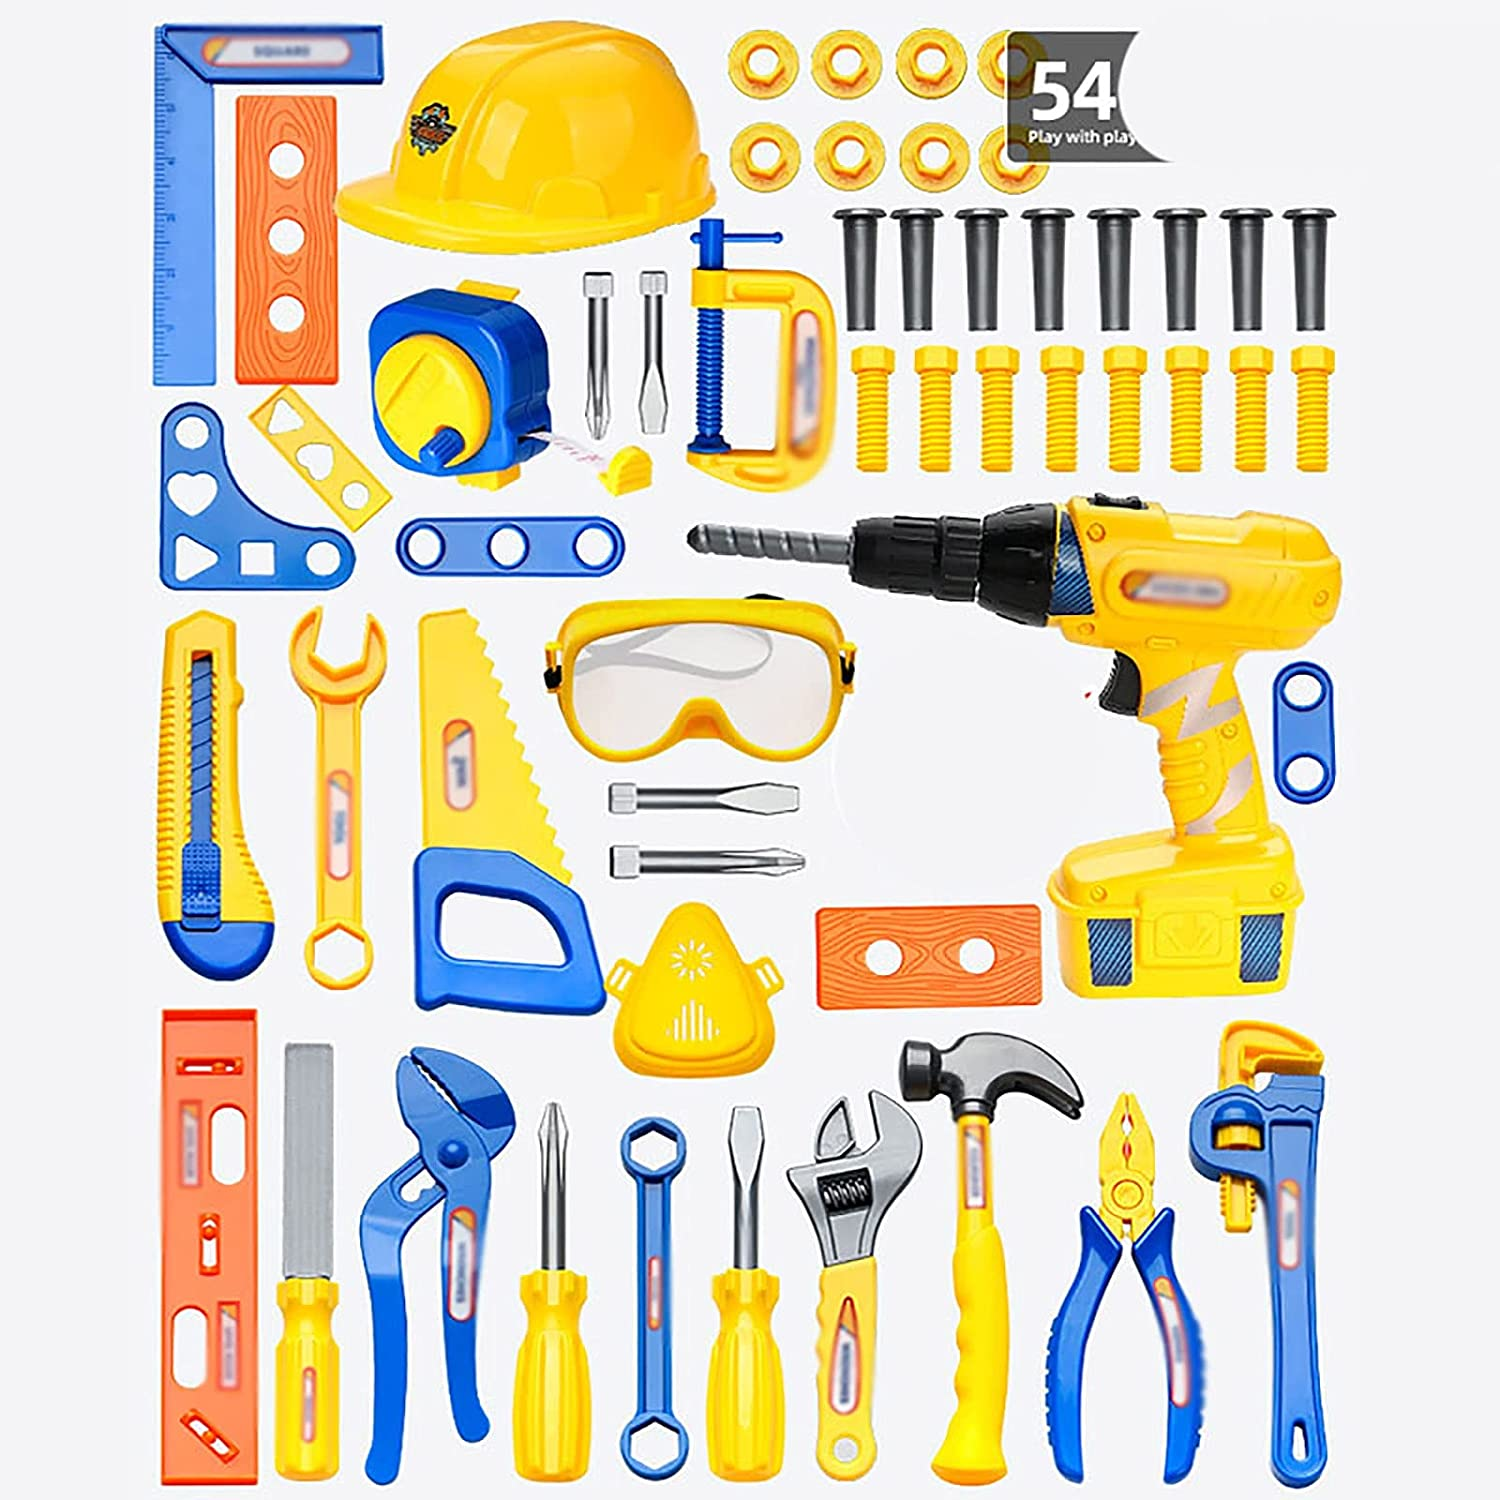 Children's Toy Milwaukee Mall Toolbox Wrench Woodworking Combinati Tool Plastic Long Beach Mall